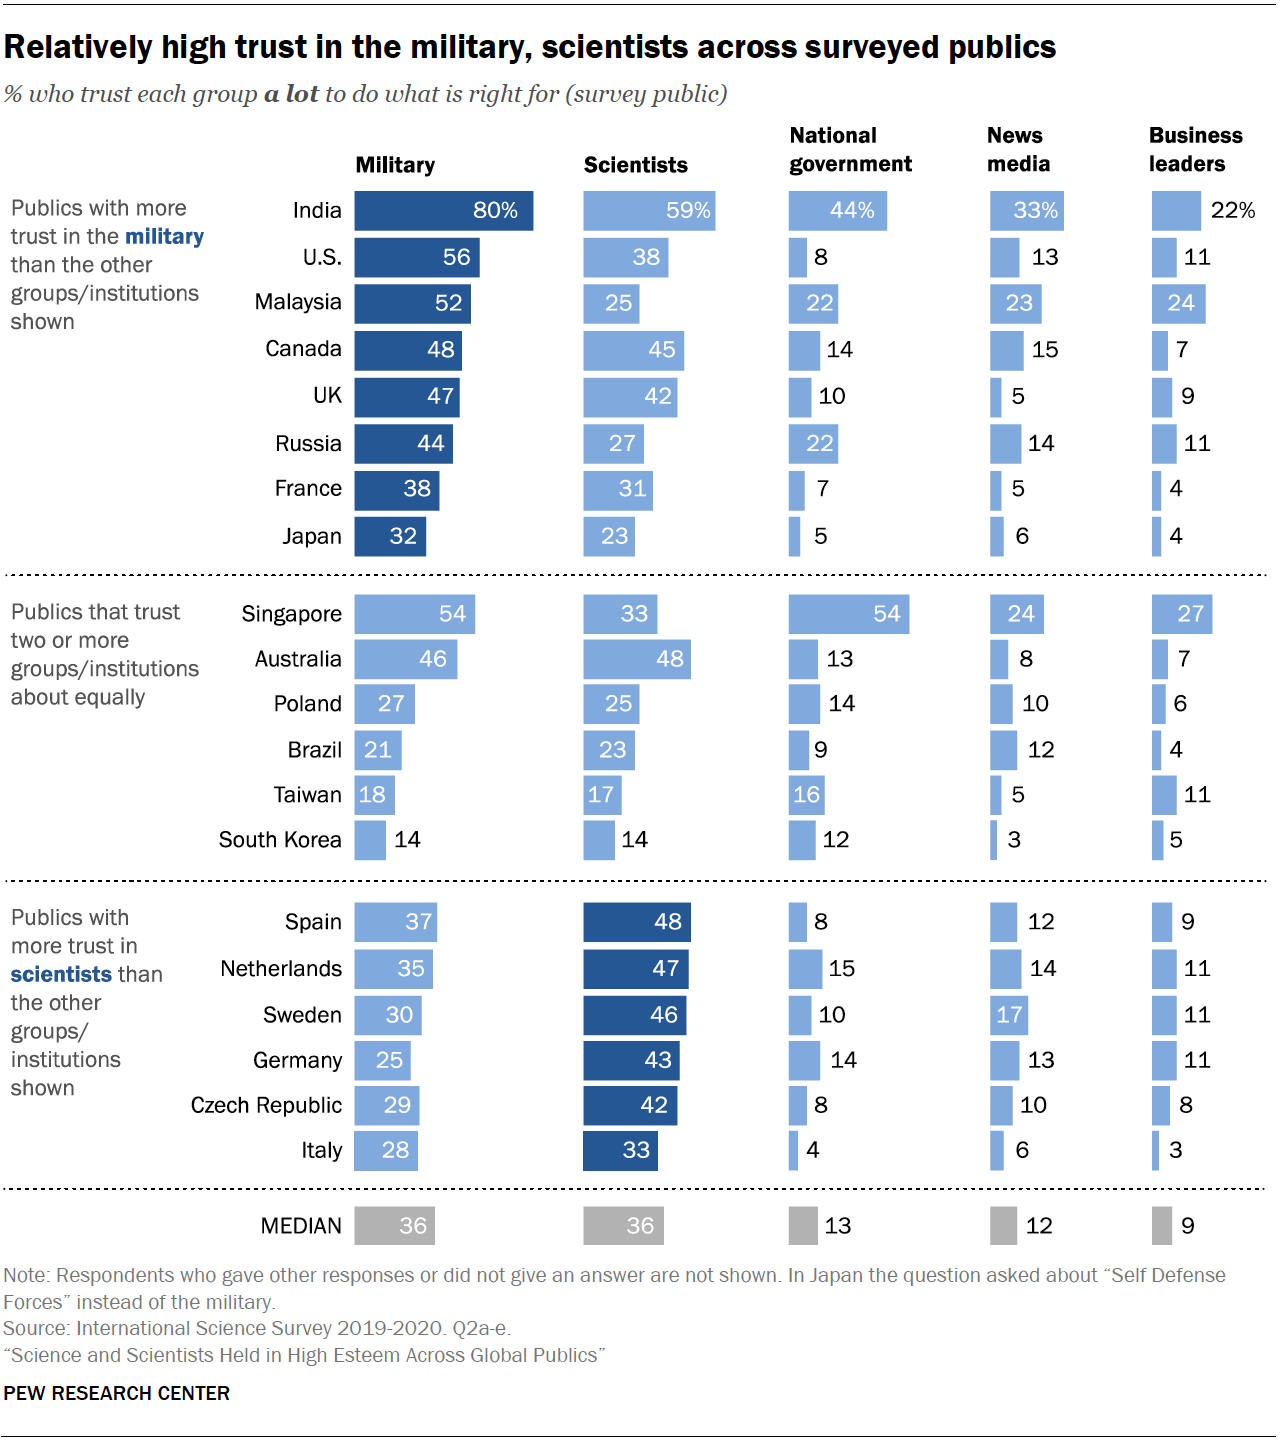 Chart shows relatively high trust in the military, scientists across surveyed publics